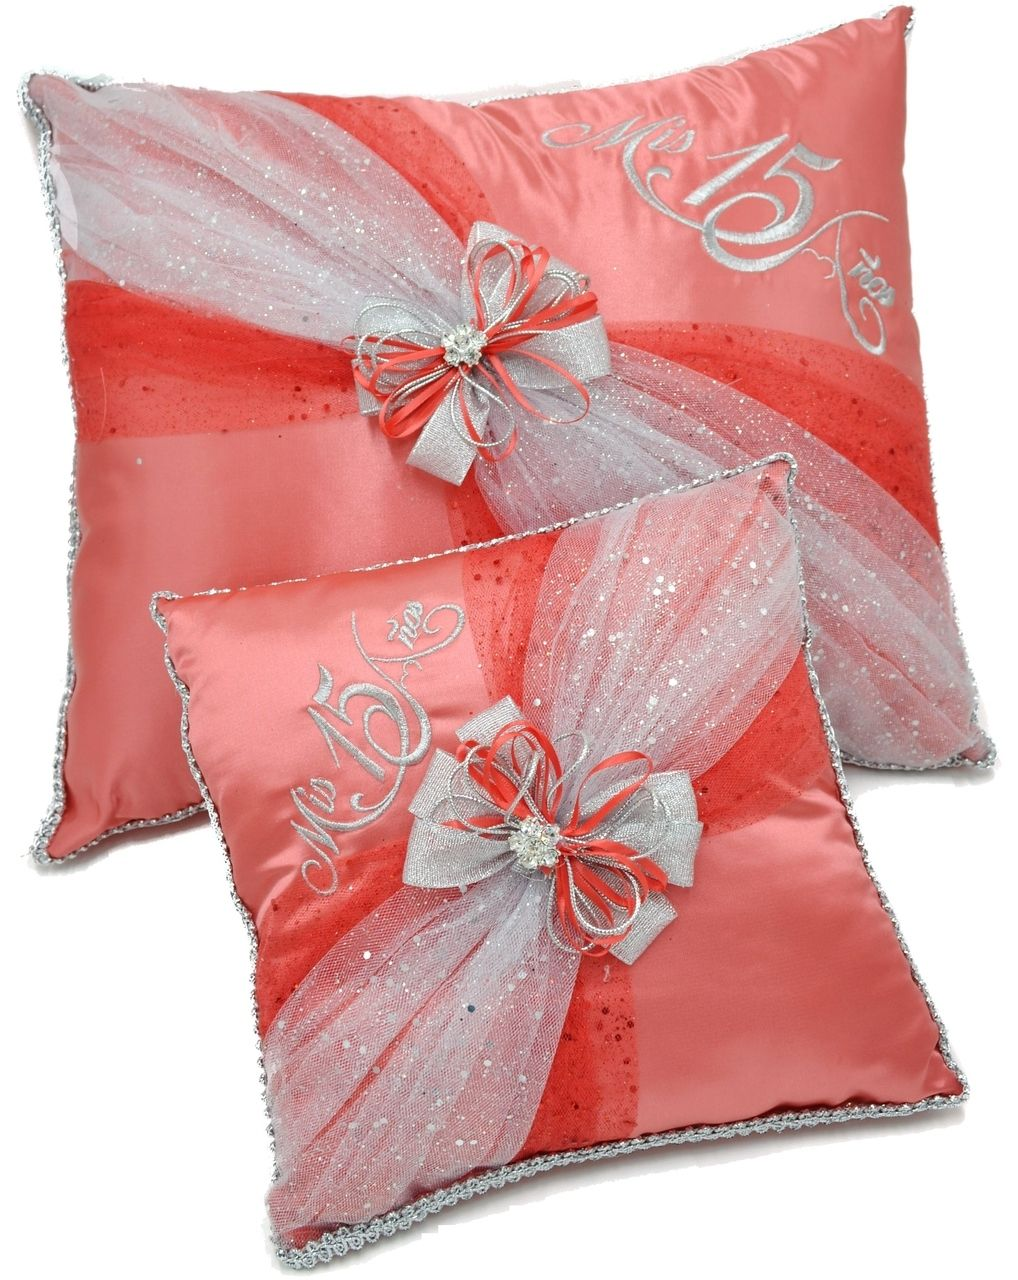 Quinceanera Kneeling, Slipper and Tiara Pillows - Two Pillows ...